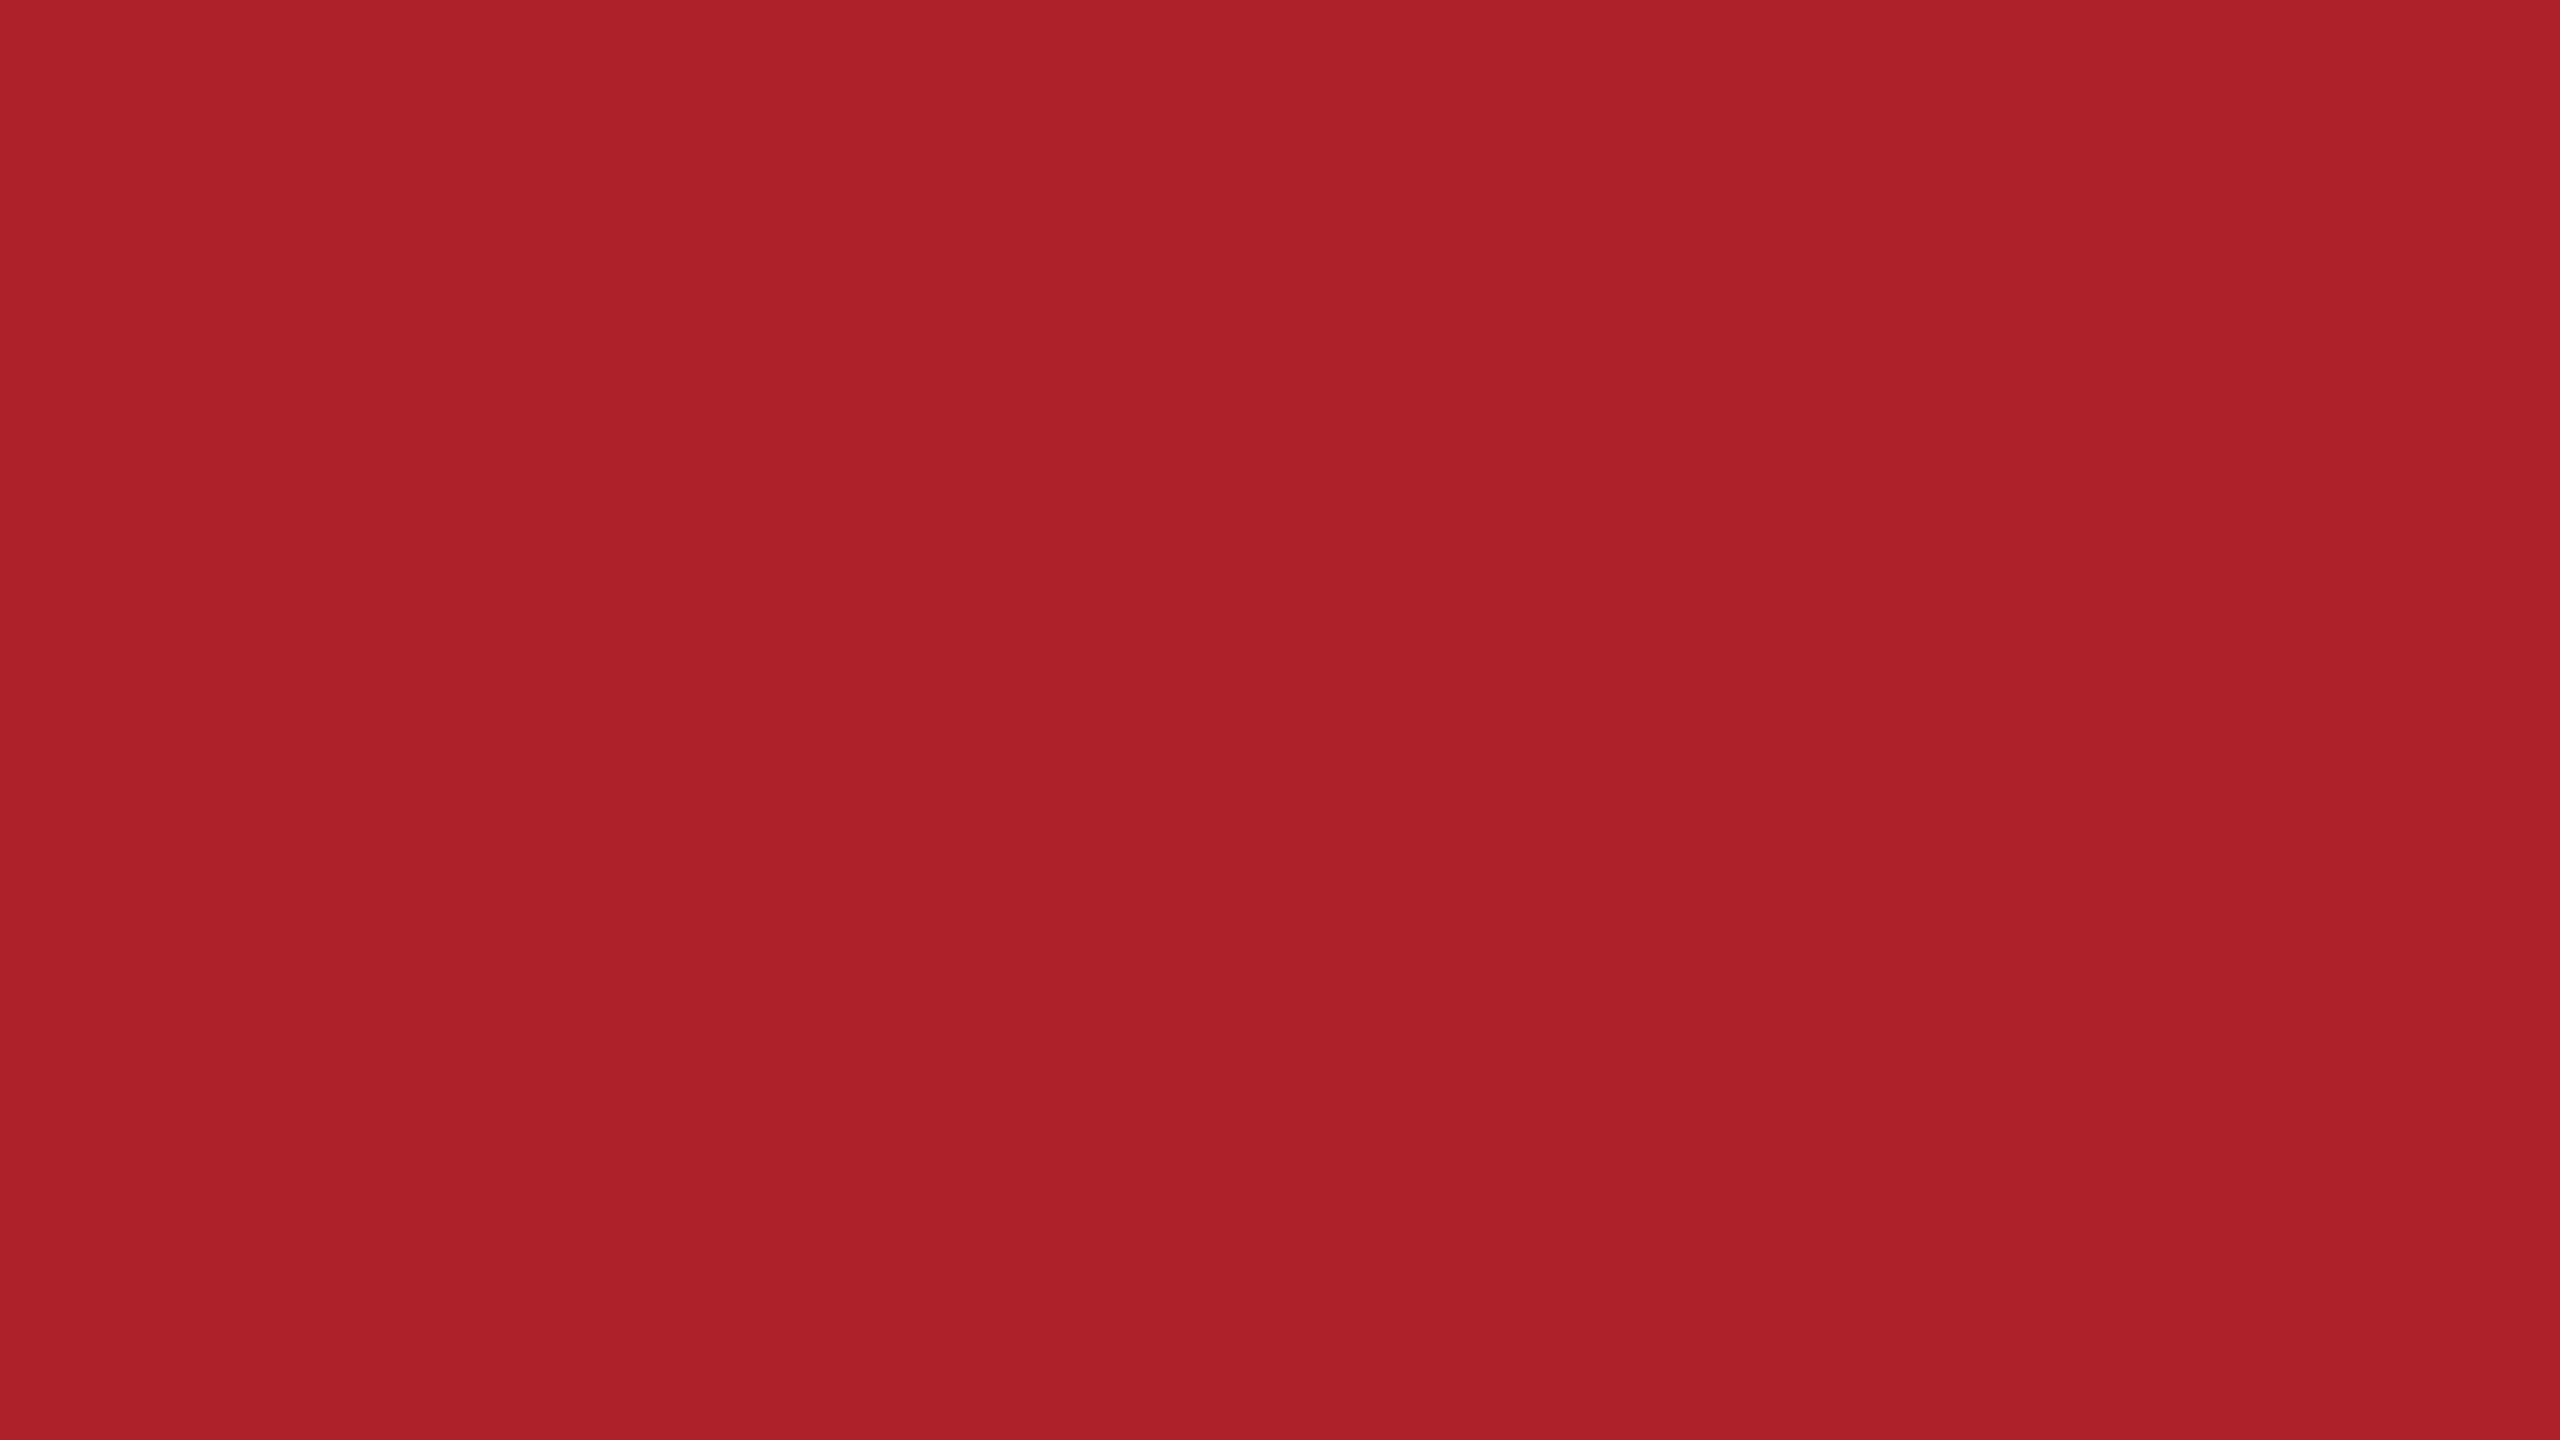 2560x1440 Upsdell Red Solid Color Background